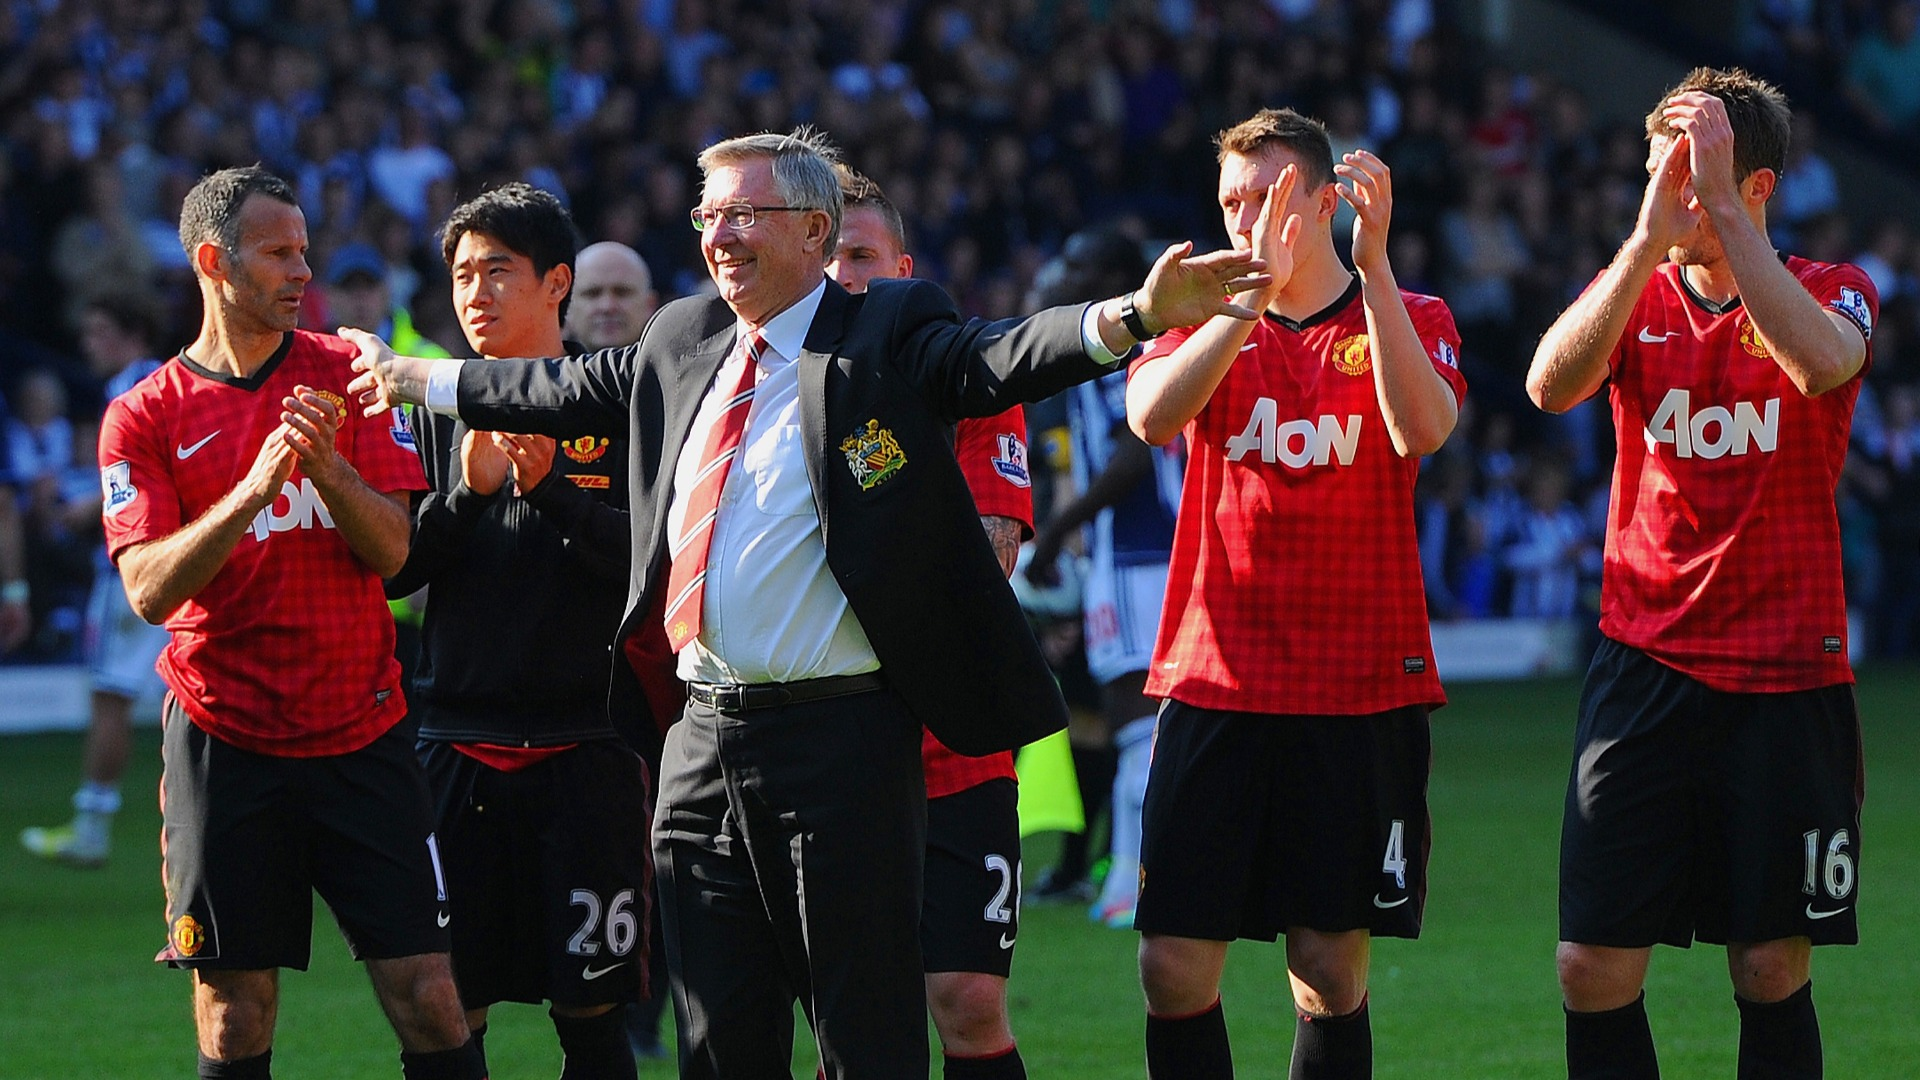 'Moyes has just resigned' - Remembering Alex Ferguson's chaotic last Manchester United match